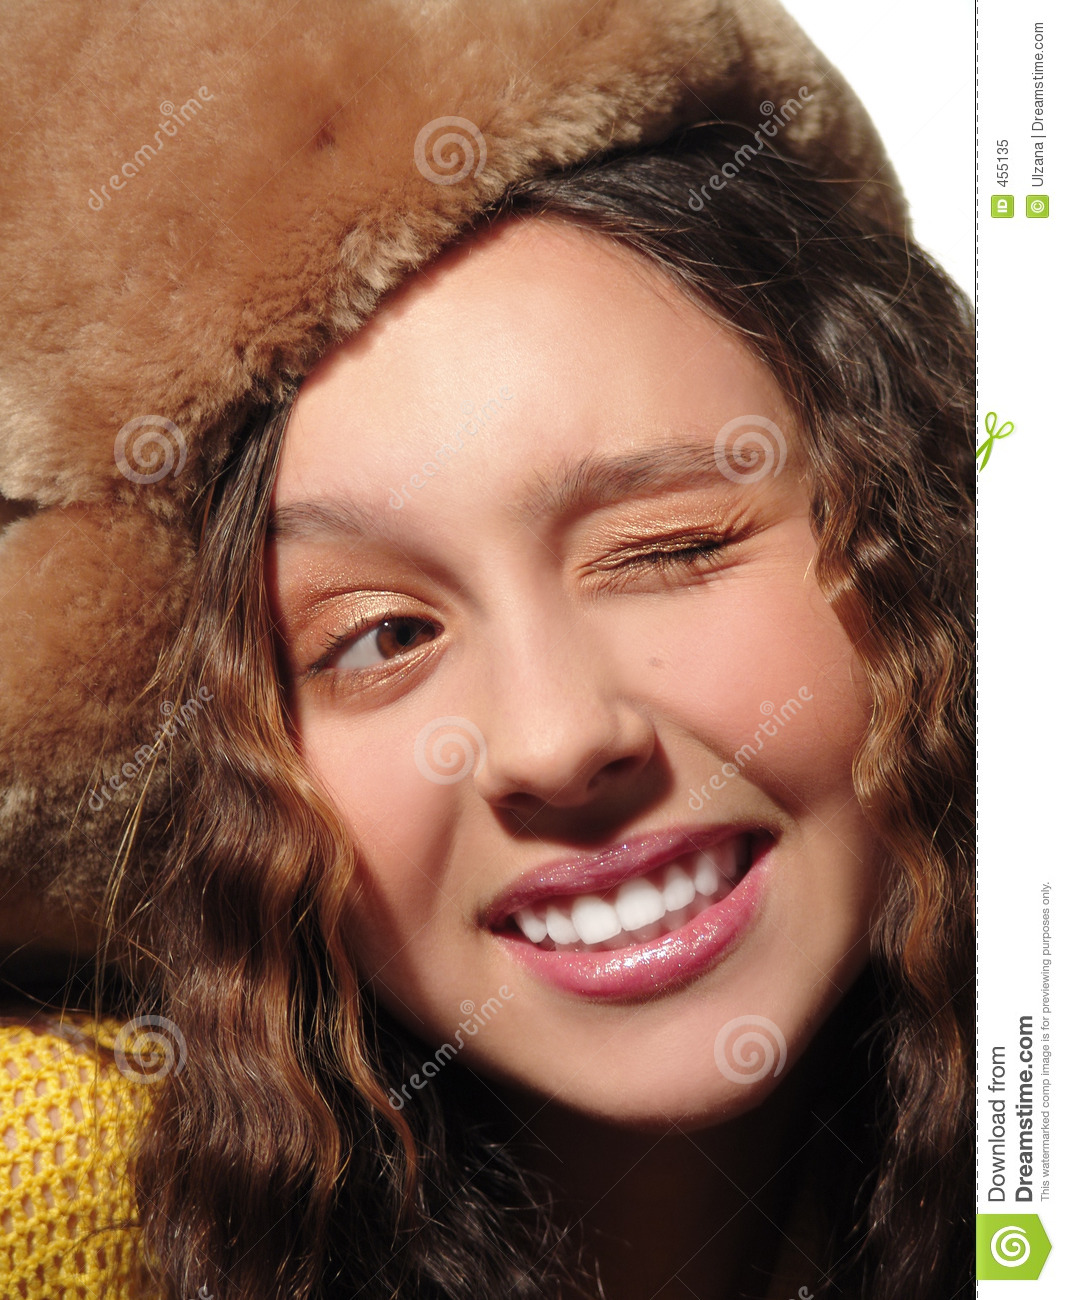 Download Wink! stock image. Image of hairs, youth, teeth, wink, pretty - 455135